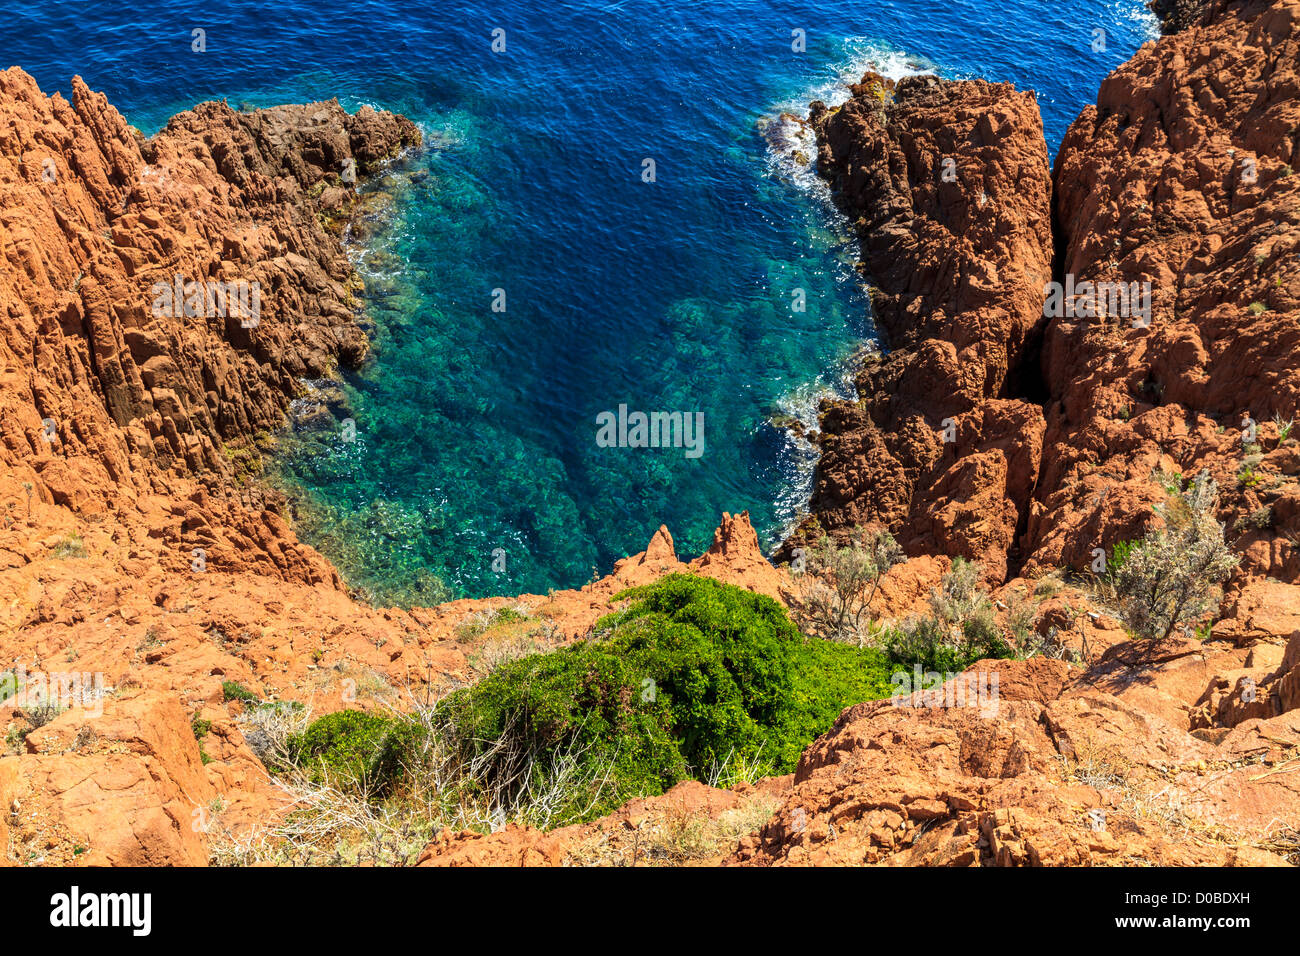 Beautiful Scenic Coastline on the French Riviera near Cannes, France - Stock Image